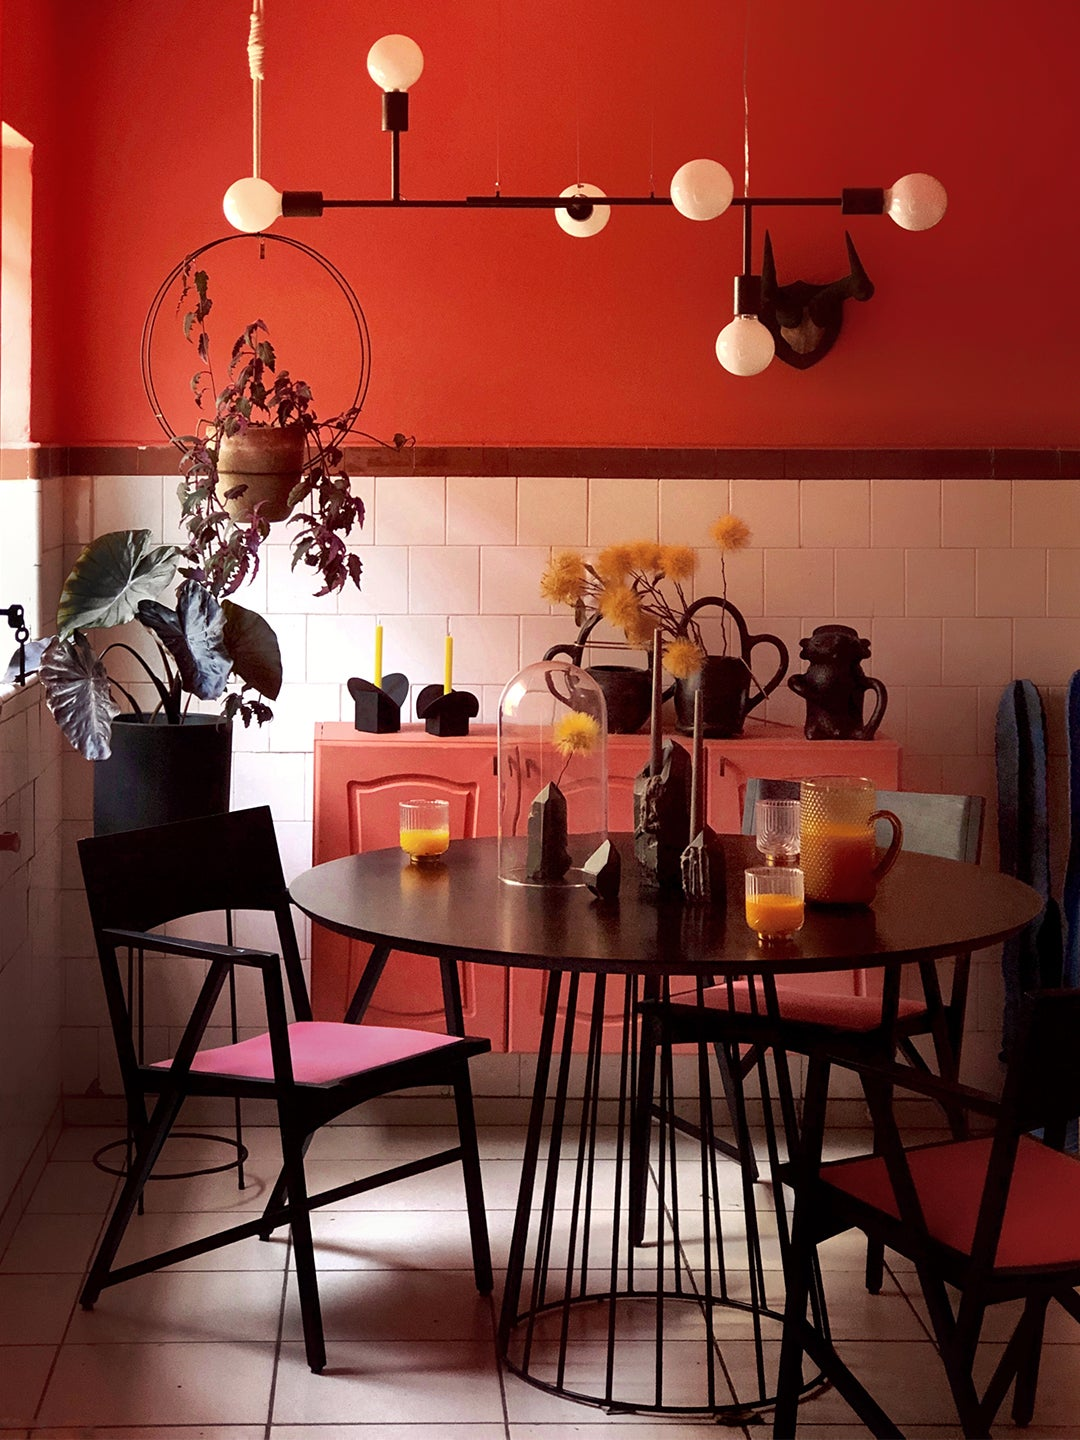 00-FEATURE-Sao-Paolo-coloful-home-tour-domino-kitchen